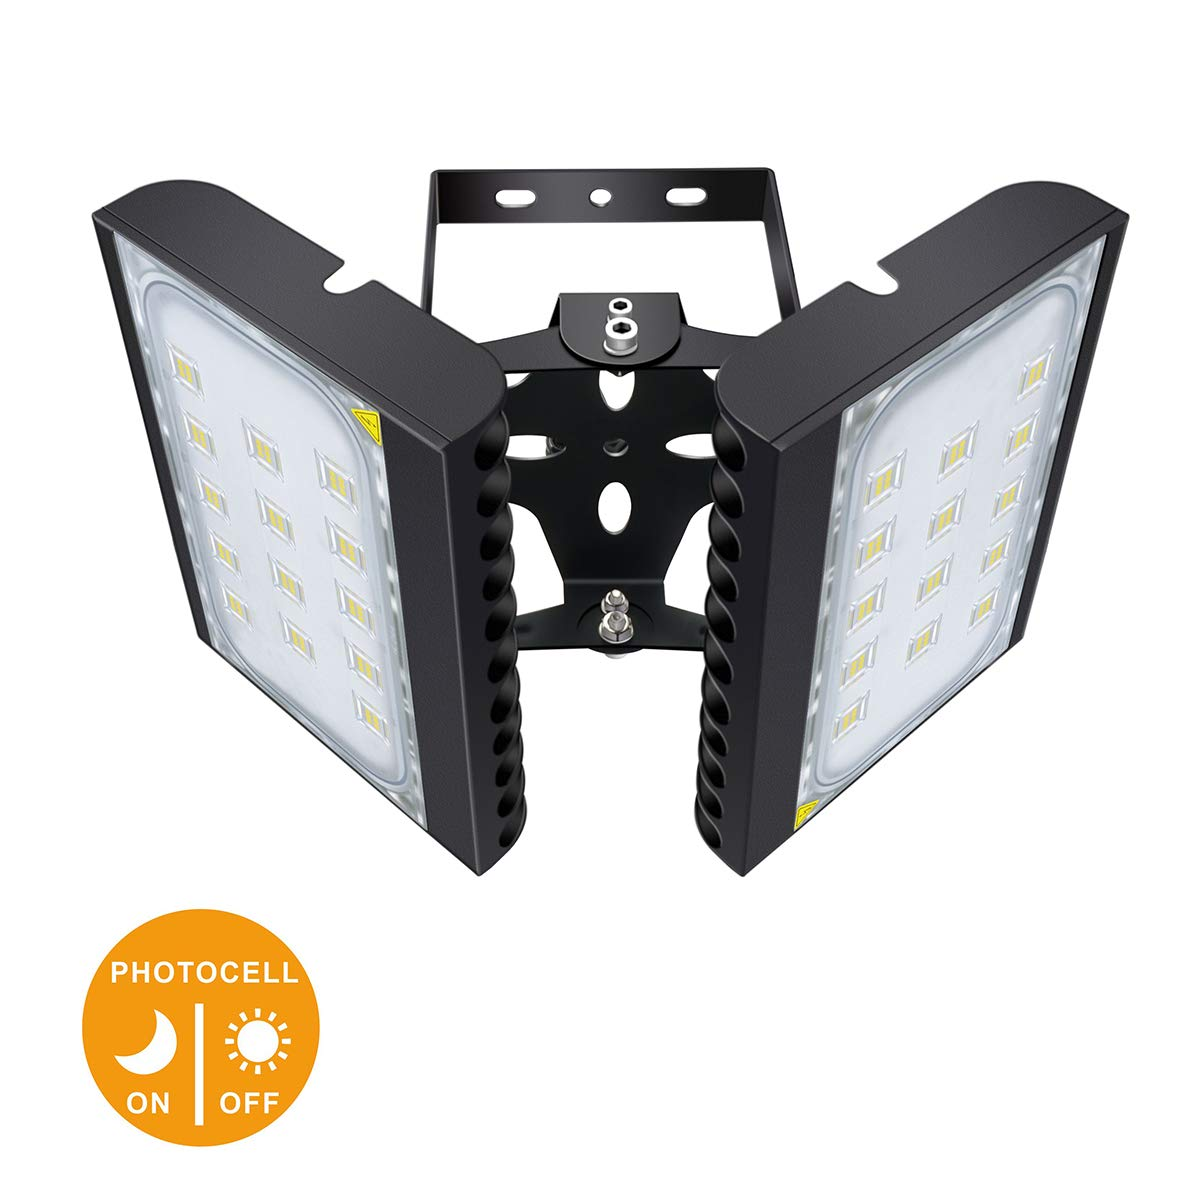 LED Flood Light, STASUN 200W 18000lm Dusk to Dawn Security Lights with 330°Wide Lighting Area (Photocell Included), 6000K Daylight, OSRAM LED Chips, Waterproof, Great for Yard, Street, Parking Lot